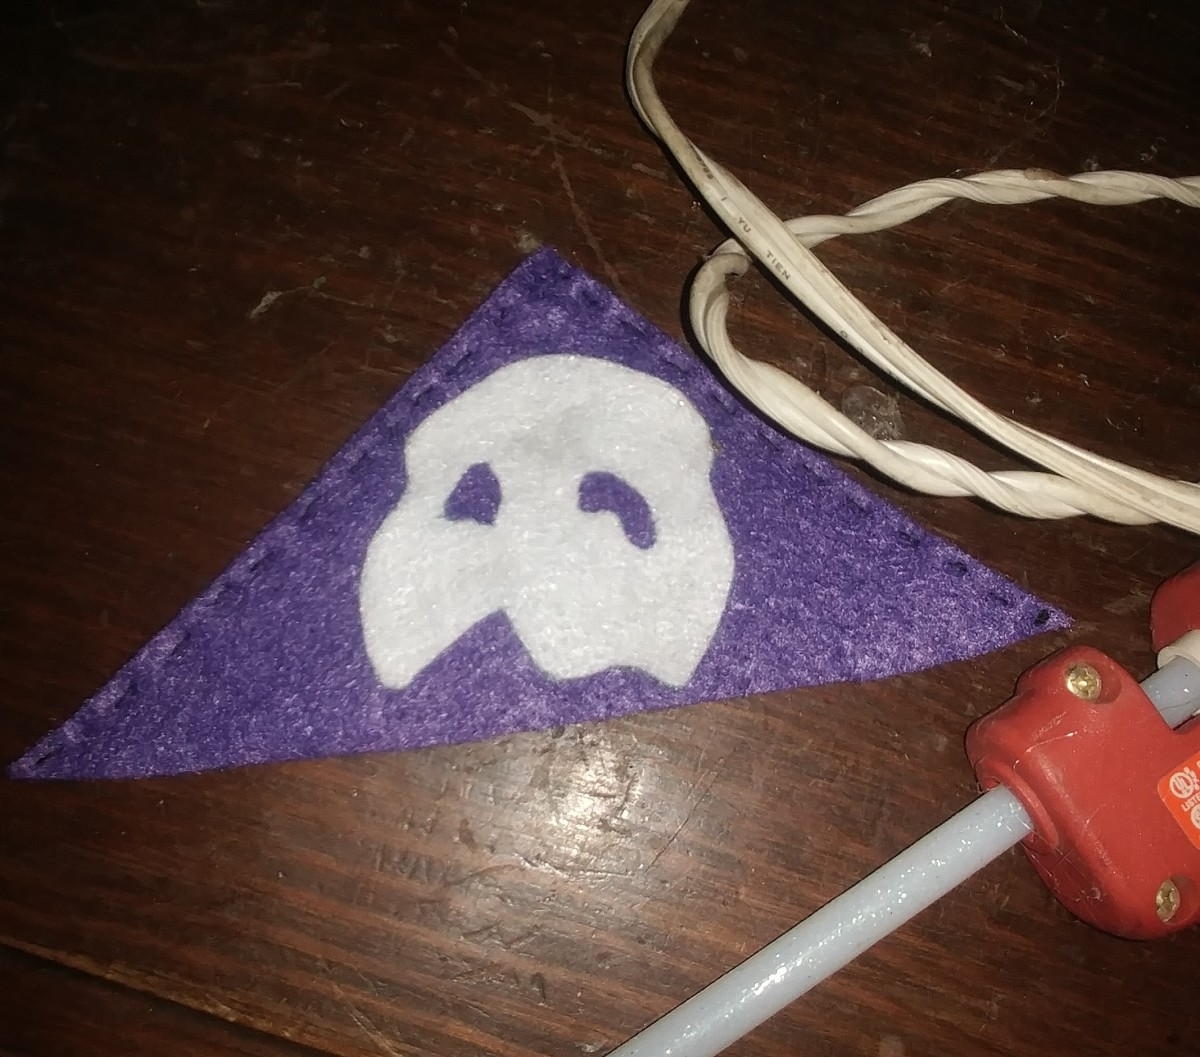 Hot glue Mask in the center of triangle.